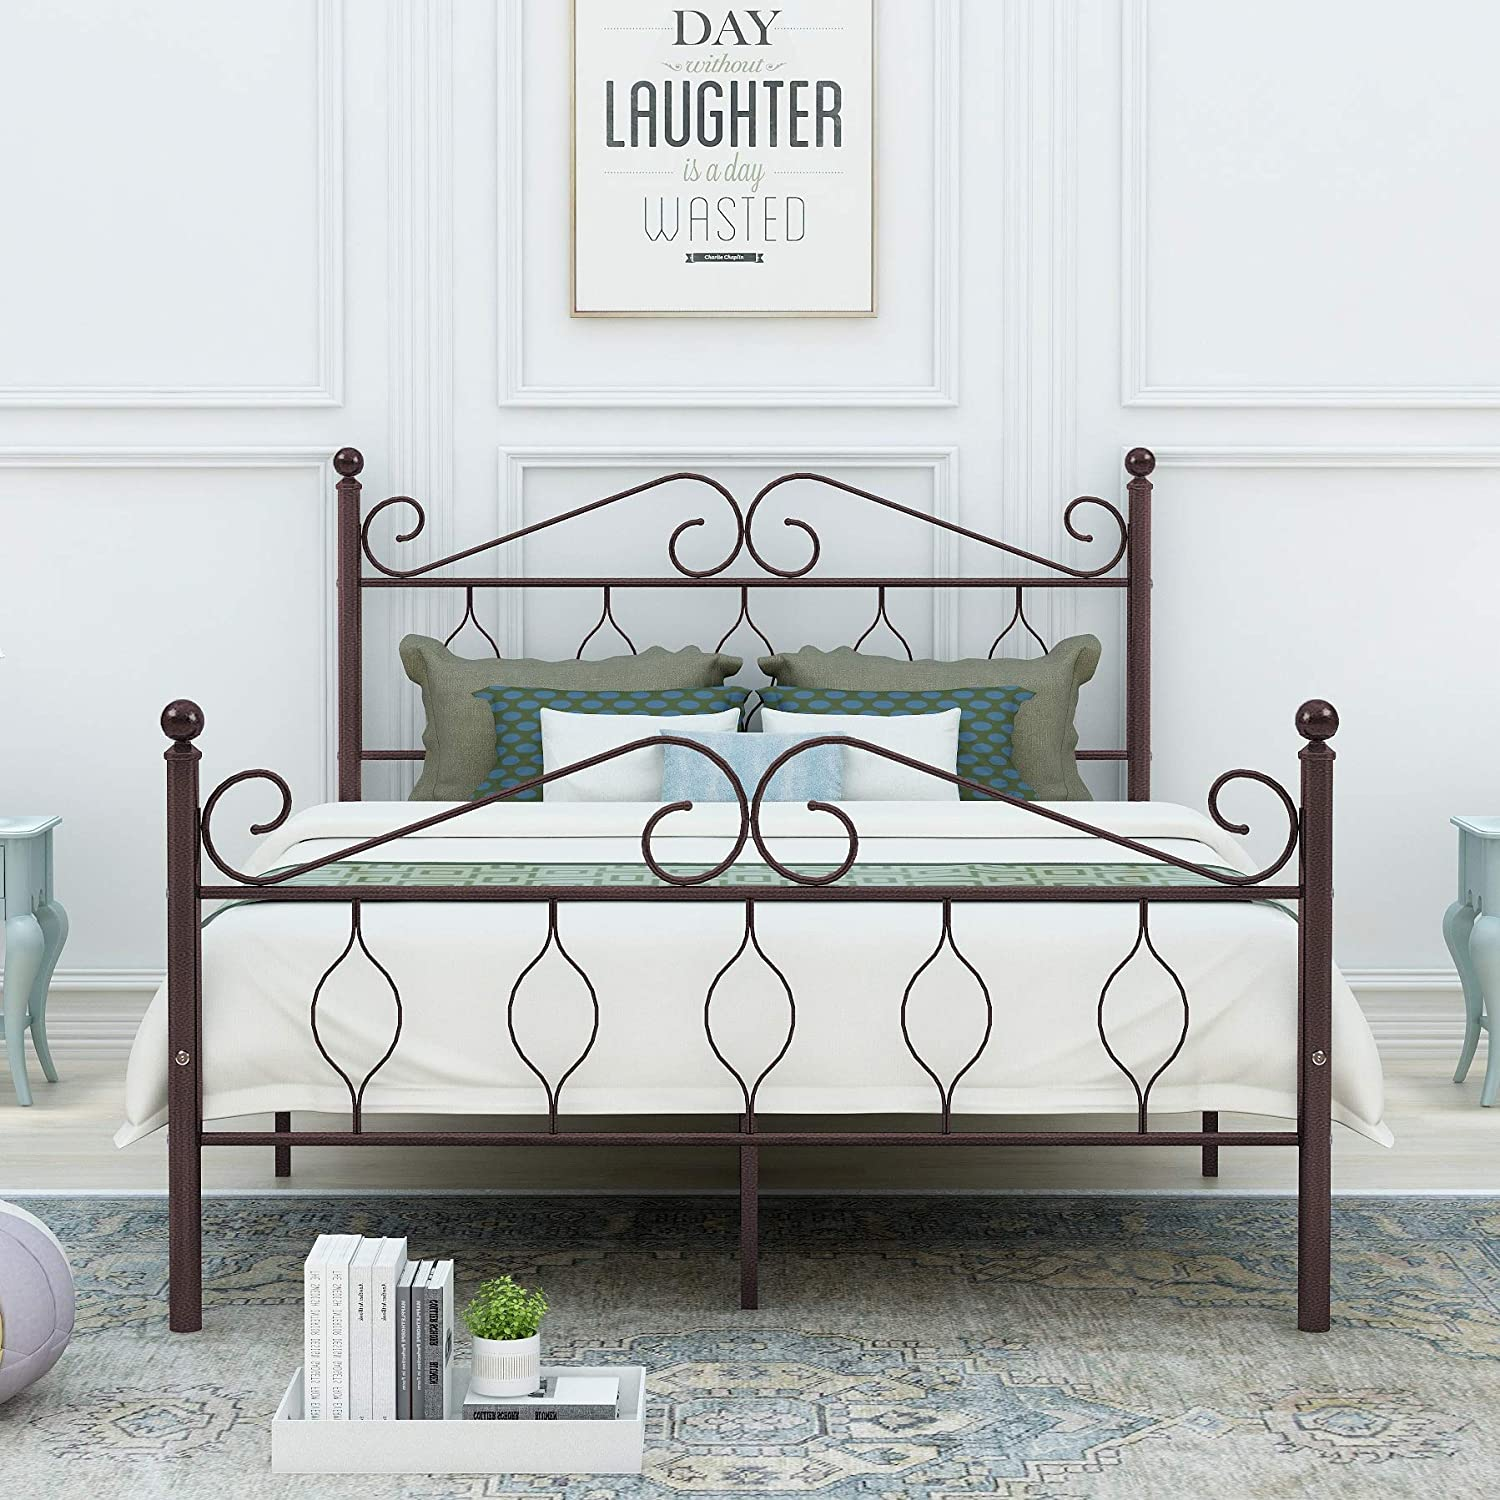 DUMEE Full Size Metal Bed Frame Heavy Duty with Vintage Headboard and Footboard Platform Base Iron Easy Assembley Bronze